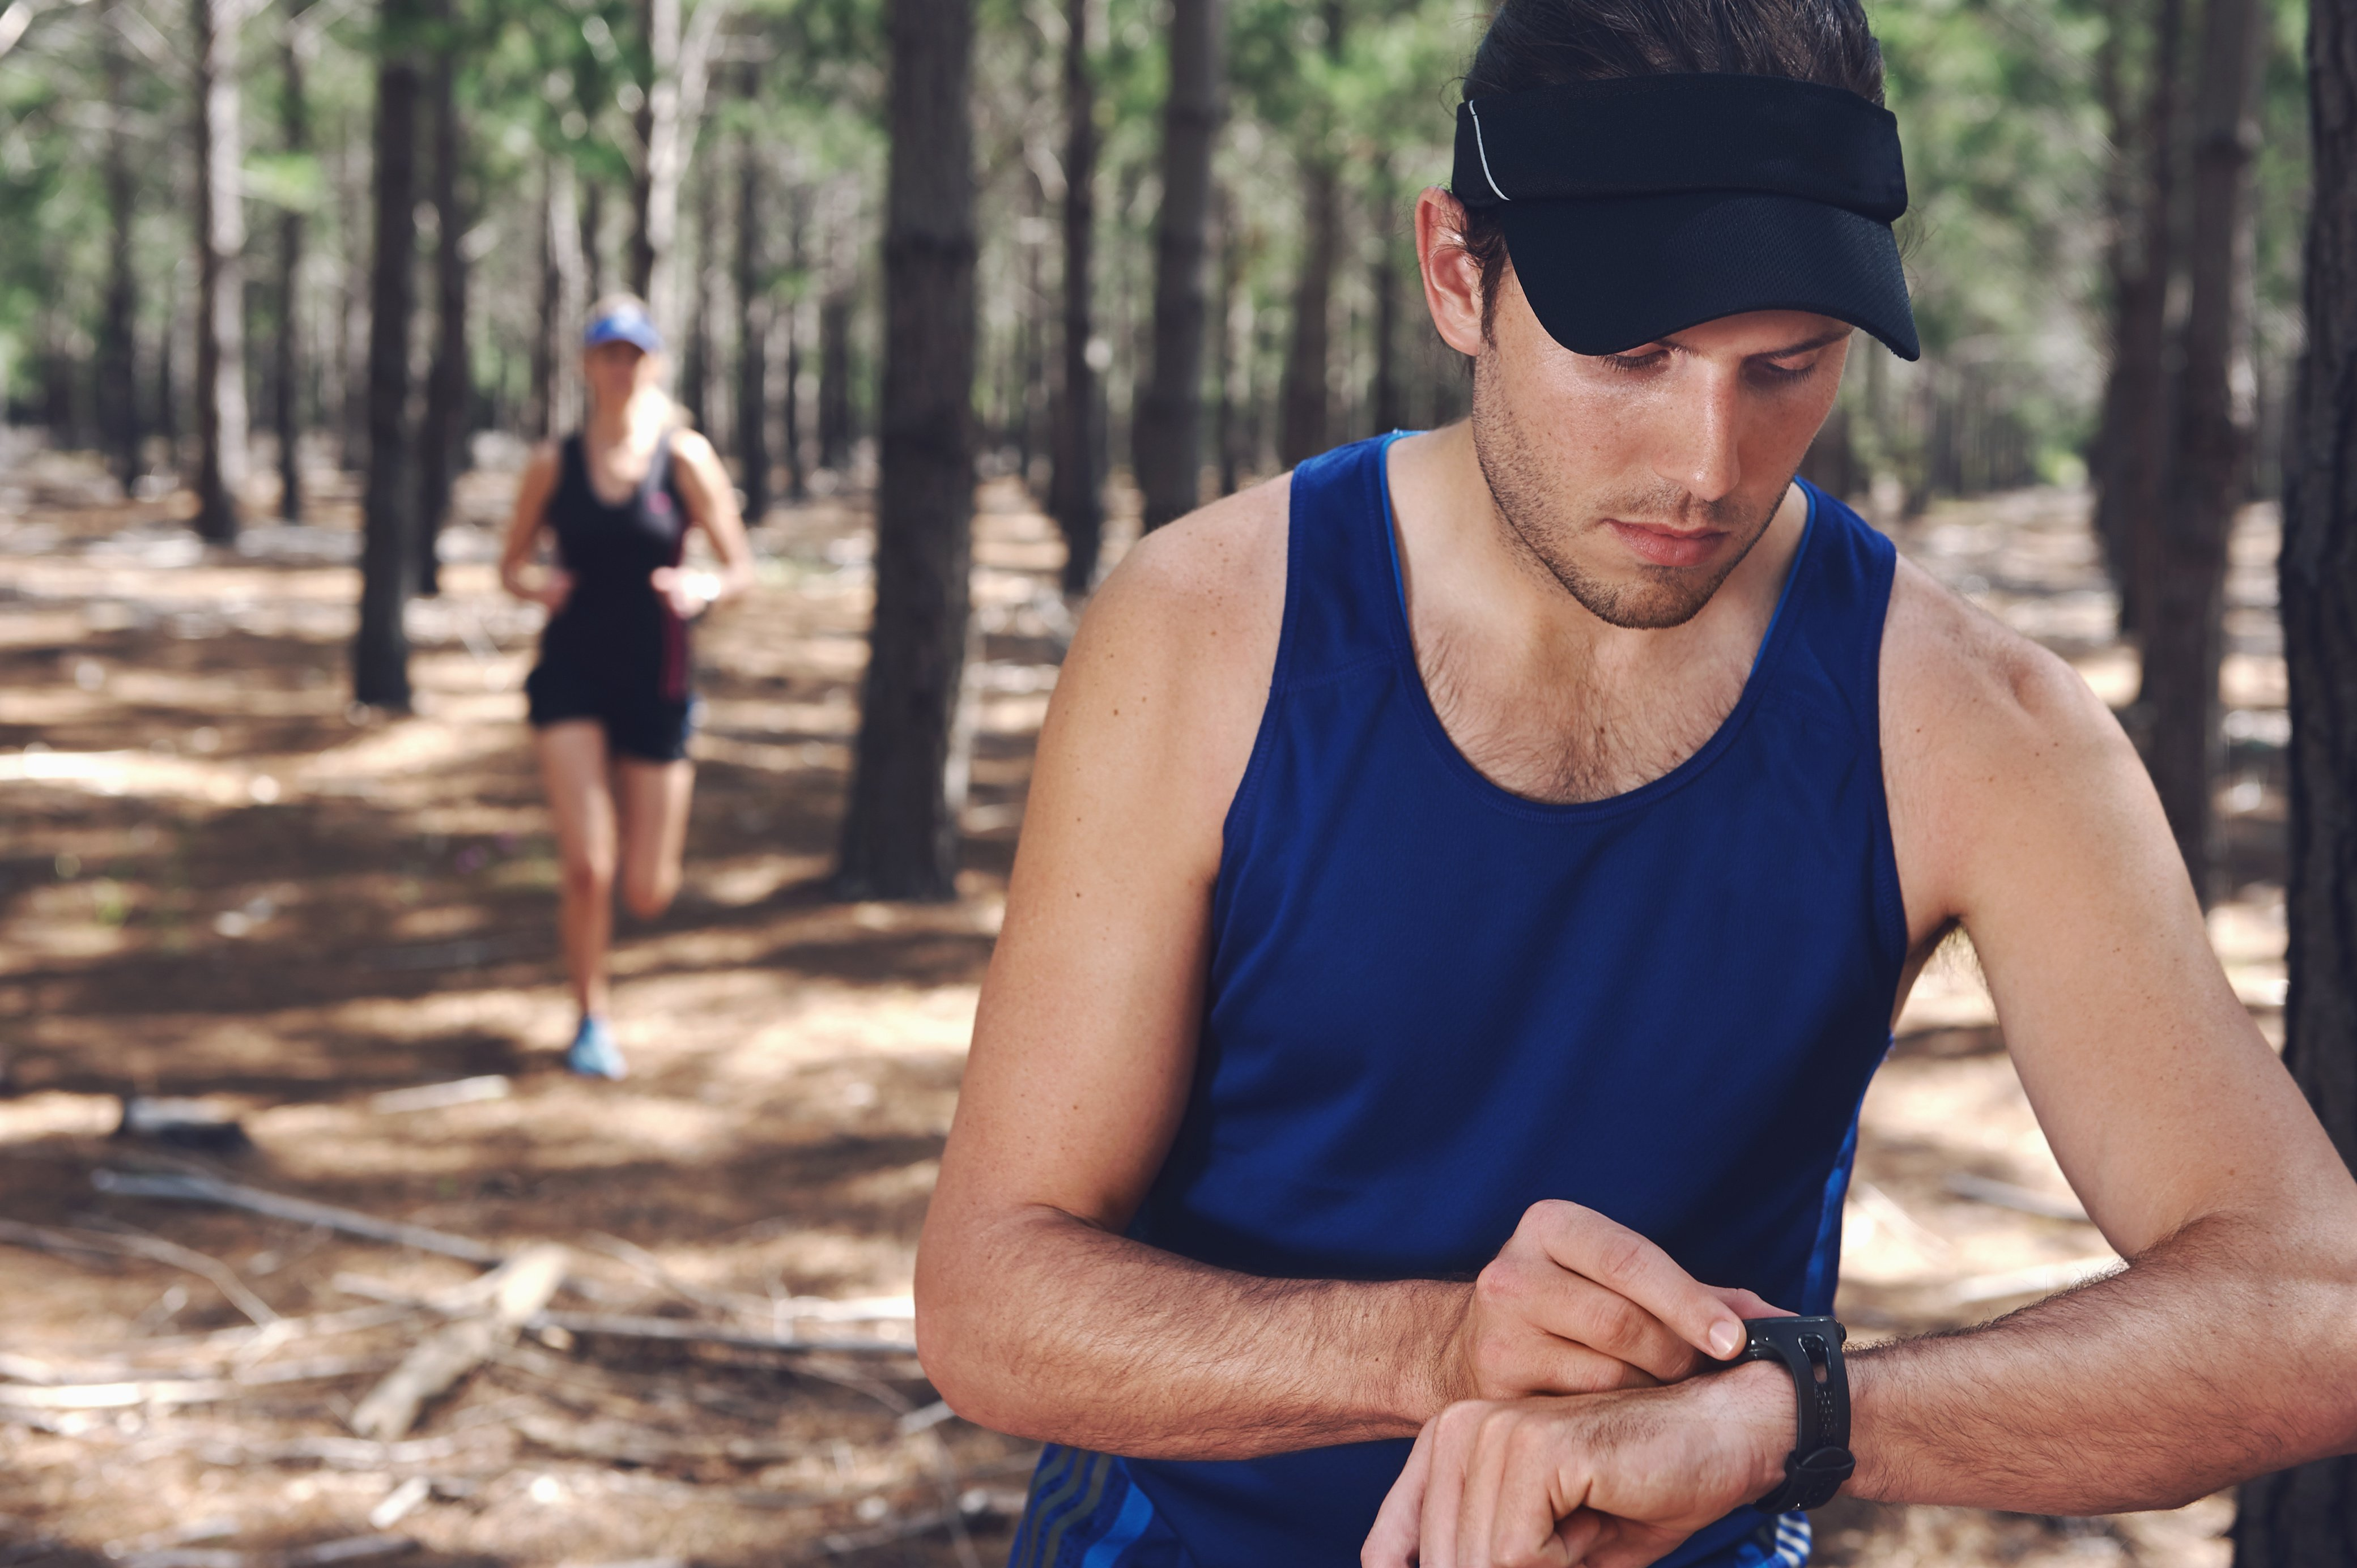 A runner in a forest checks his watch